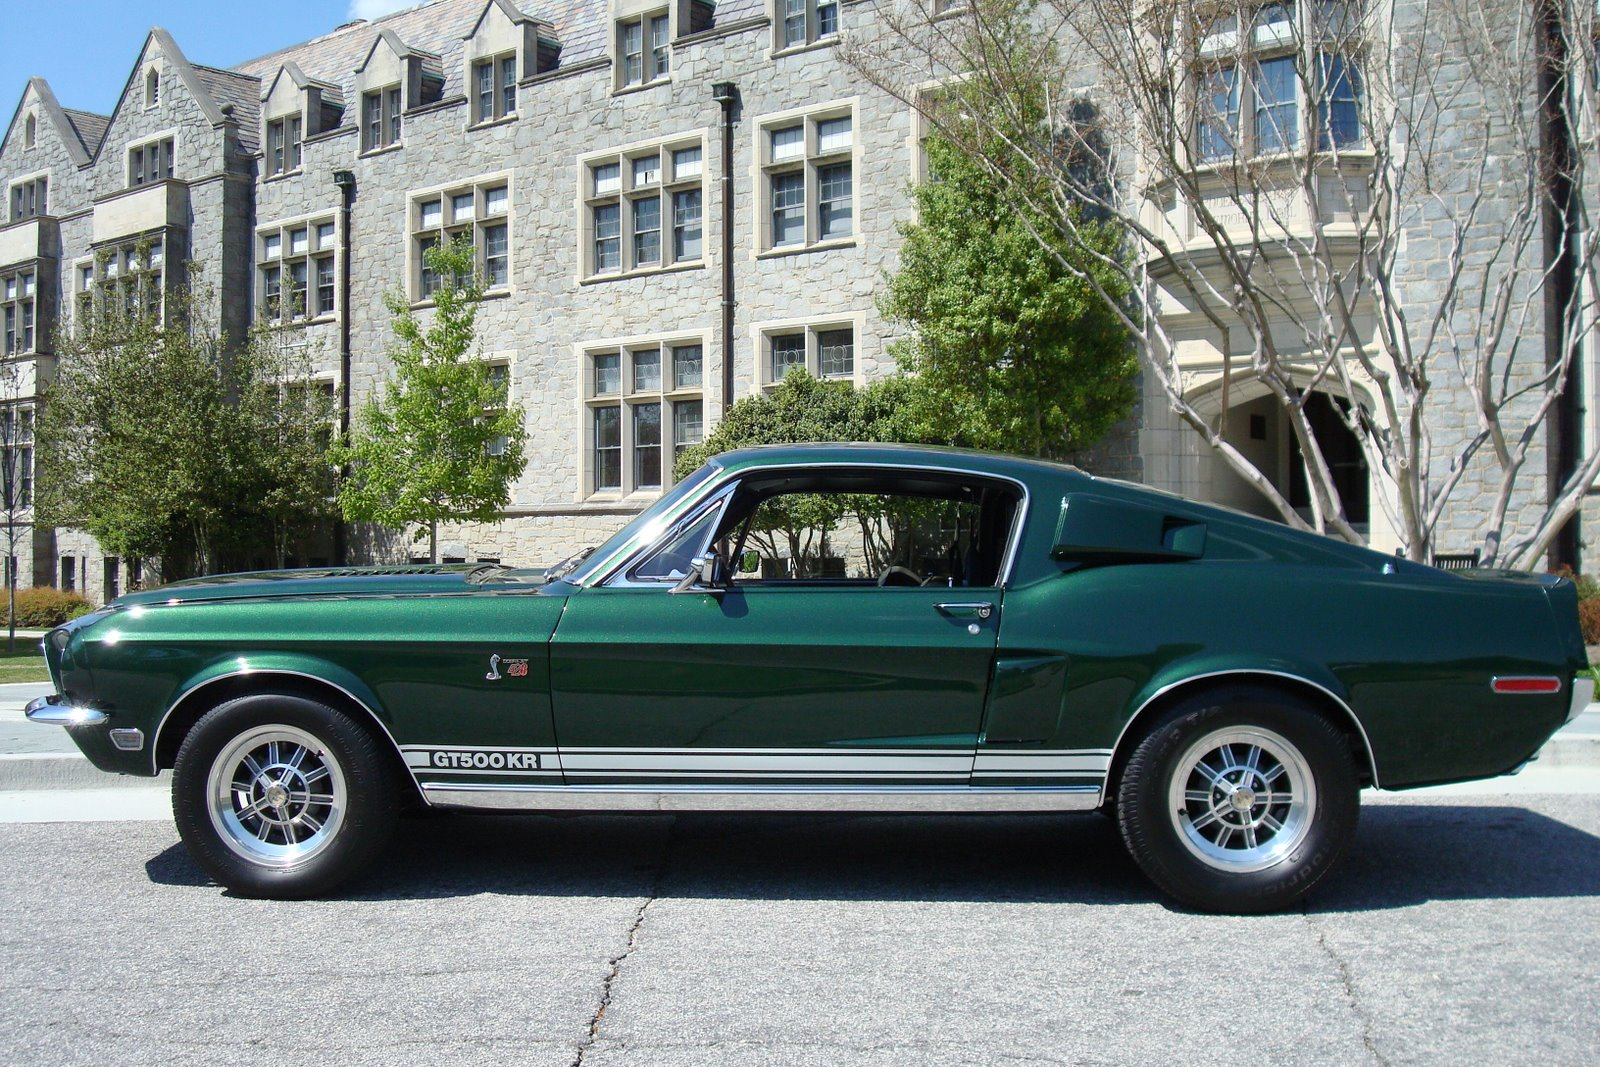 1968 Mustang Gt 500 Pictures to Pin on Pinterest  PinsDaddy